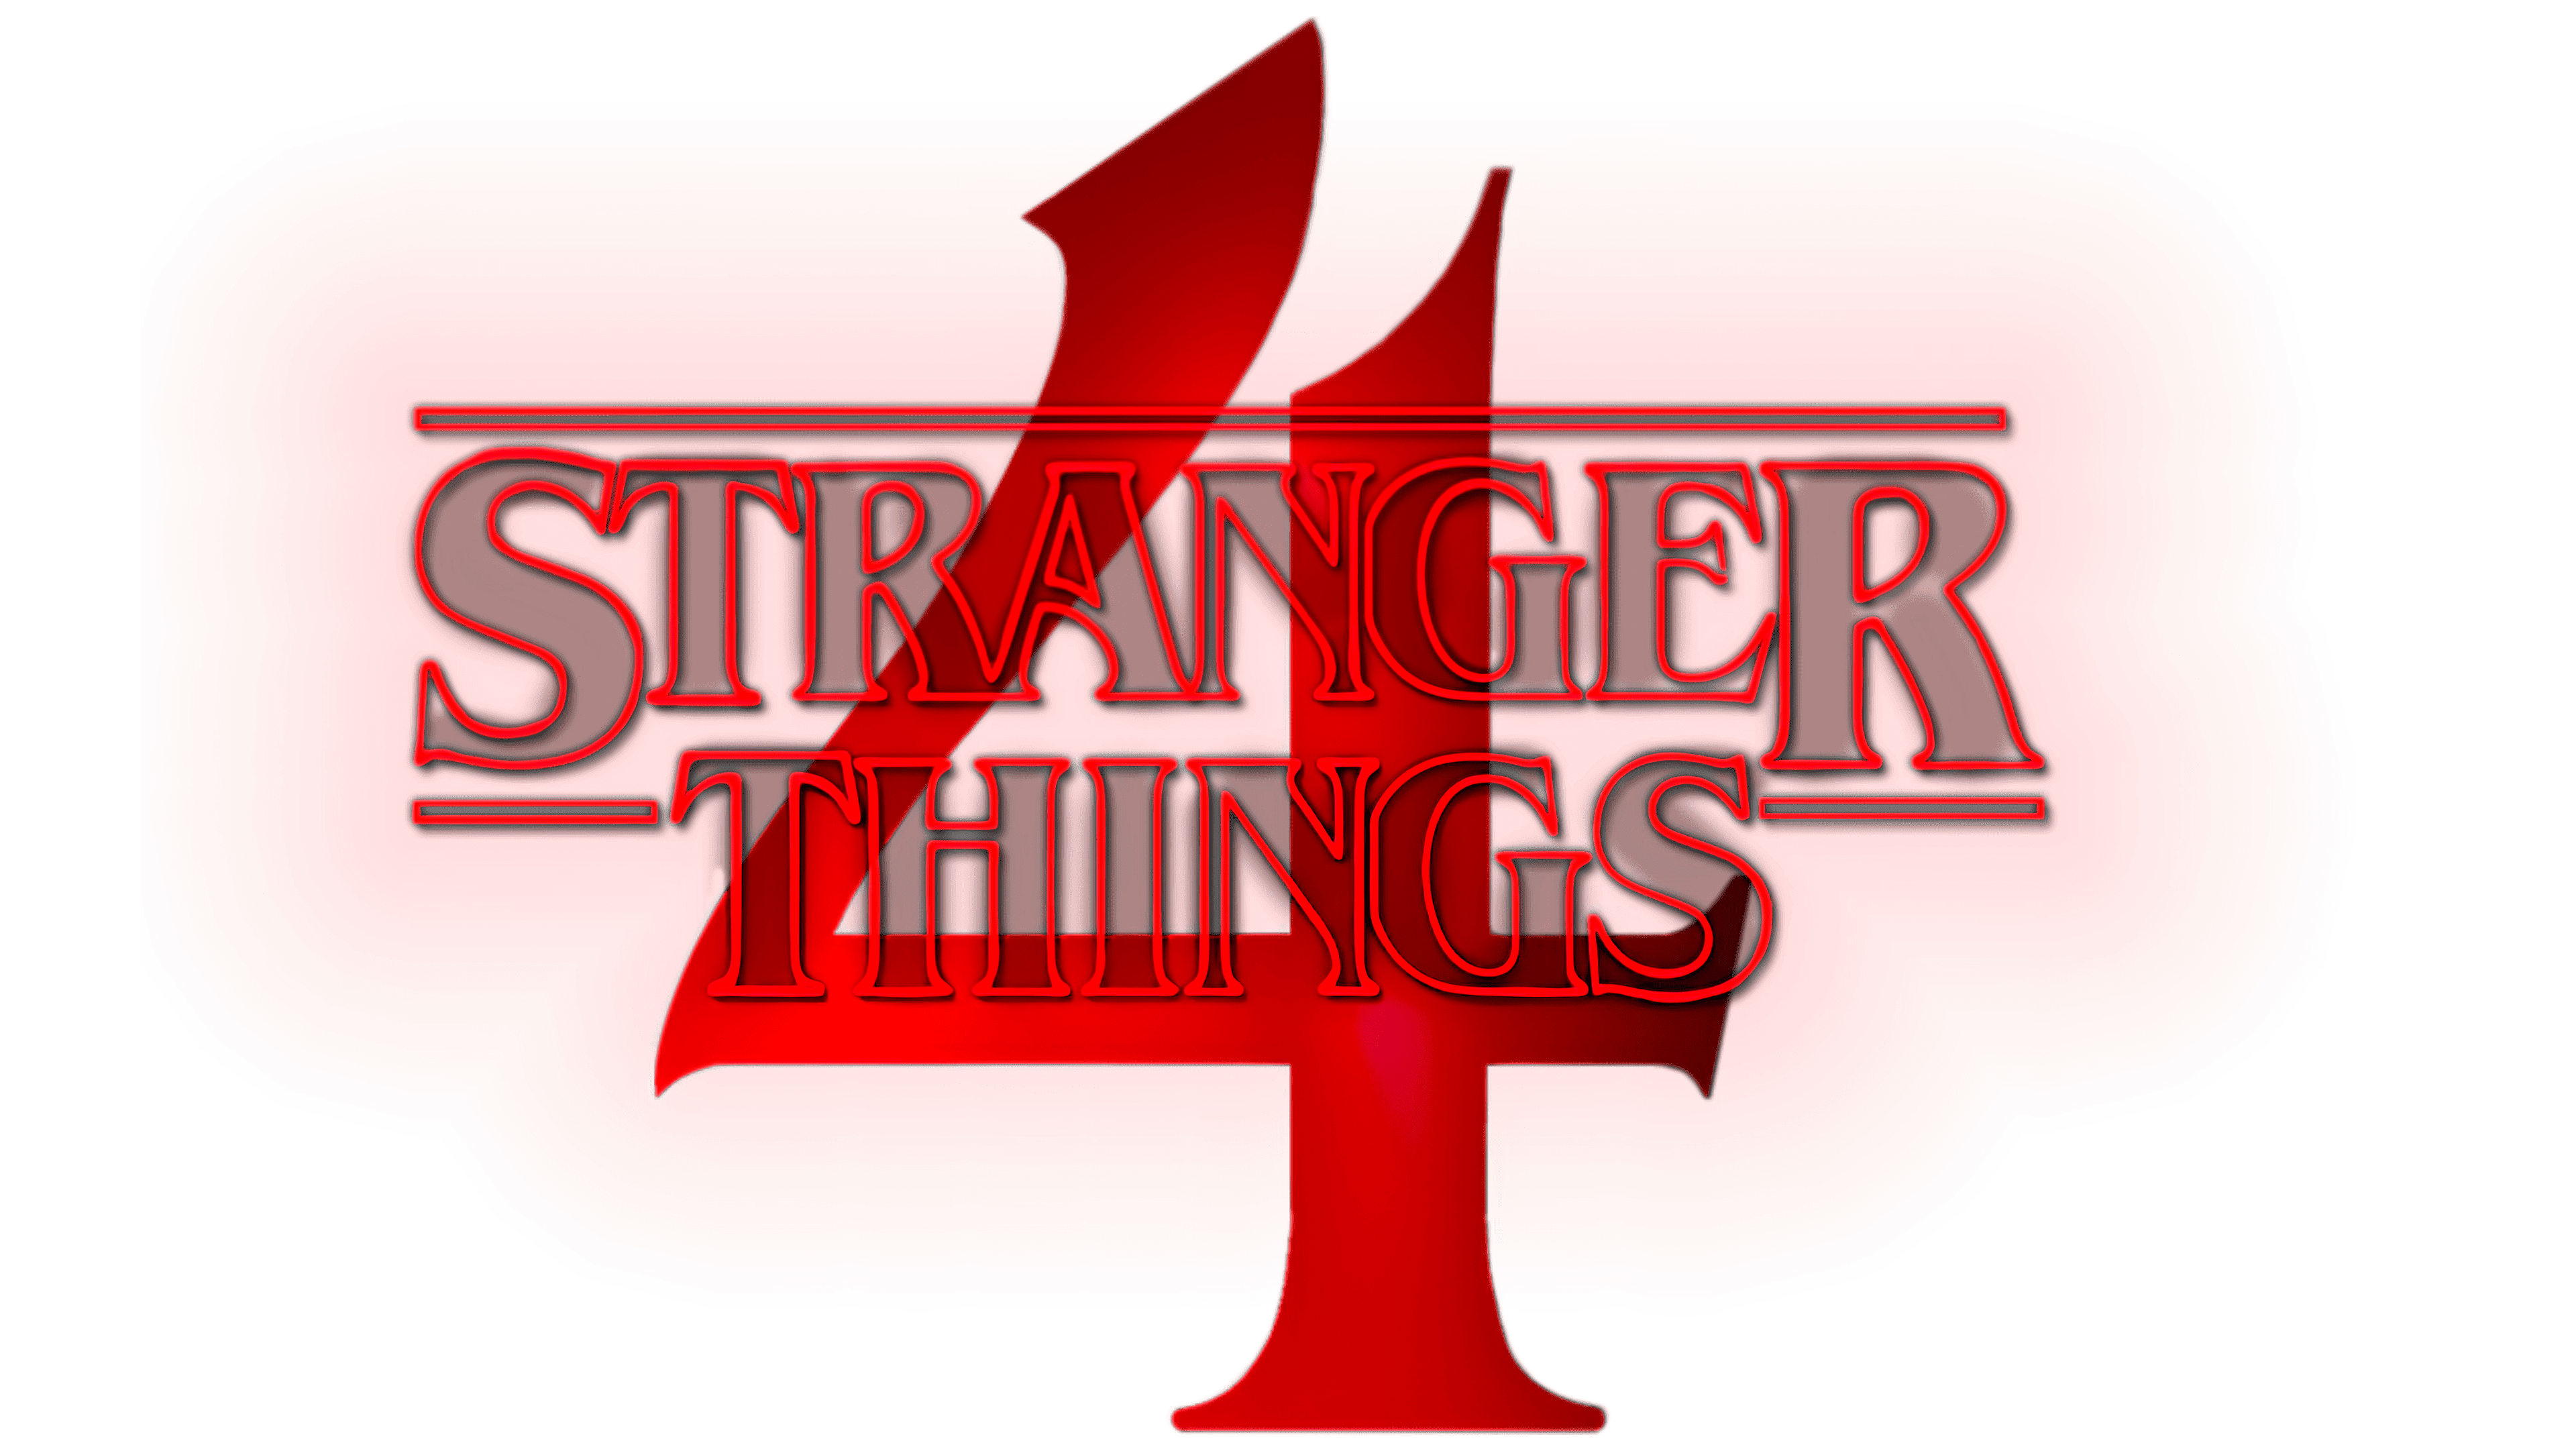 Stranger Things Logo | The most famous brands and company ...